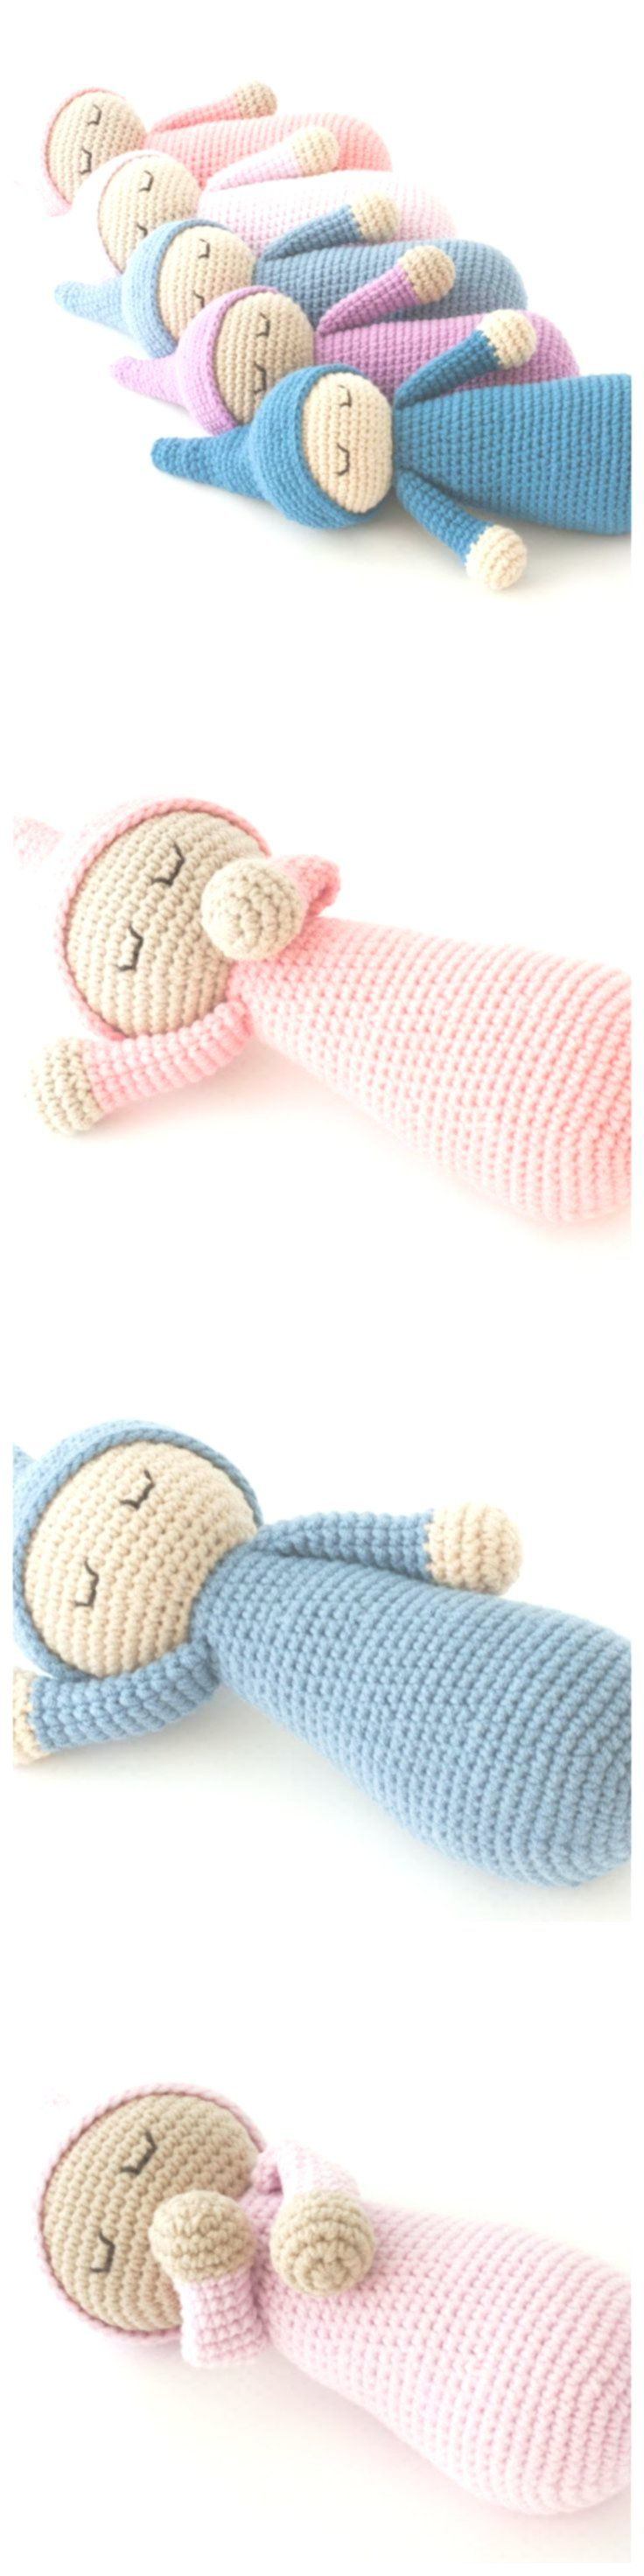 Crochet Sleepyhead Doll – Free Pattern